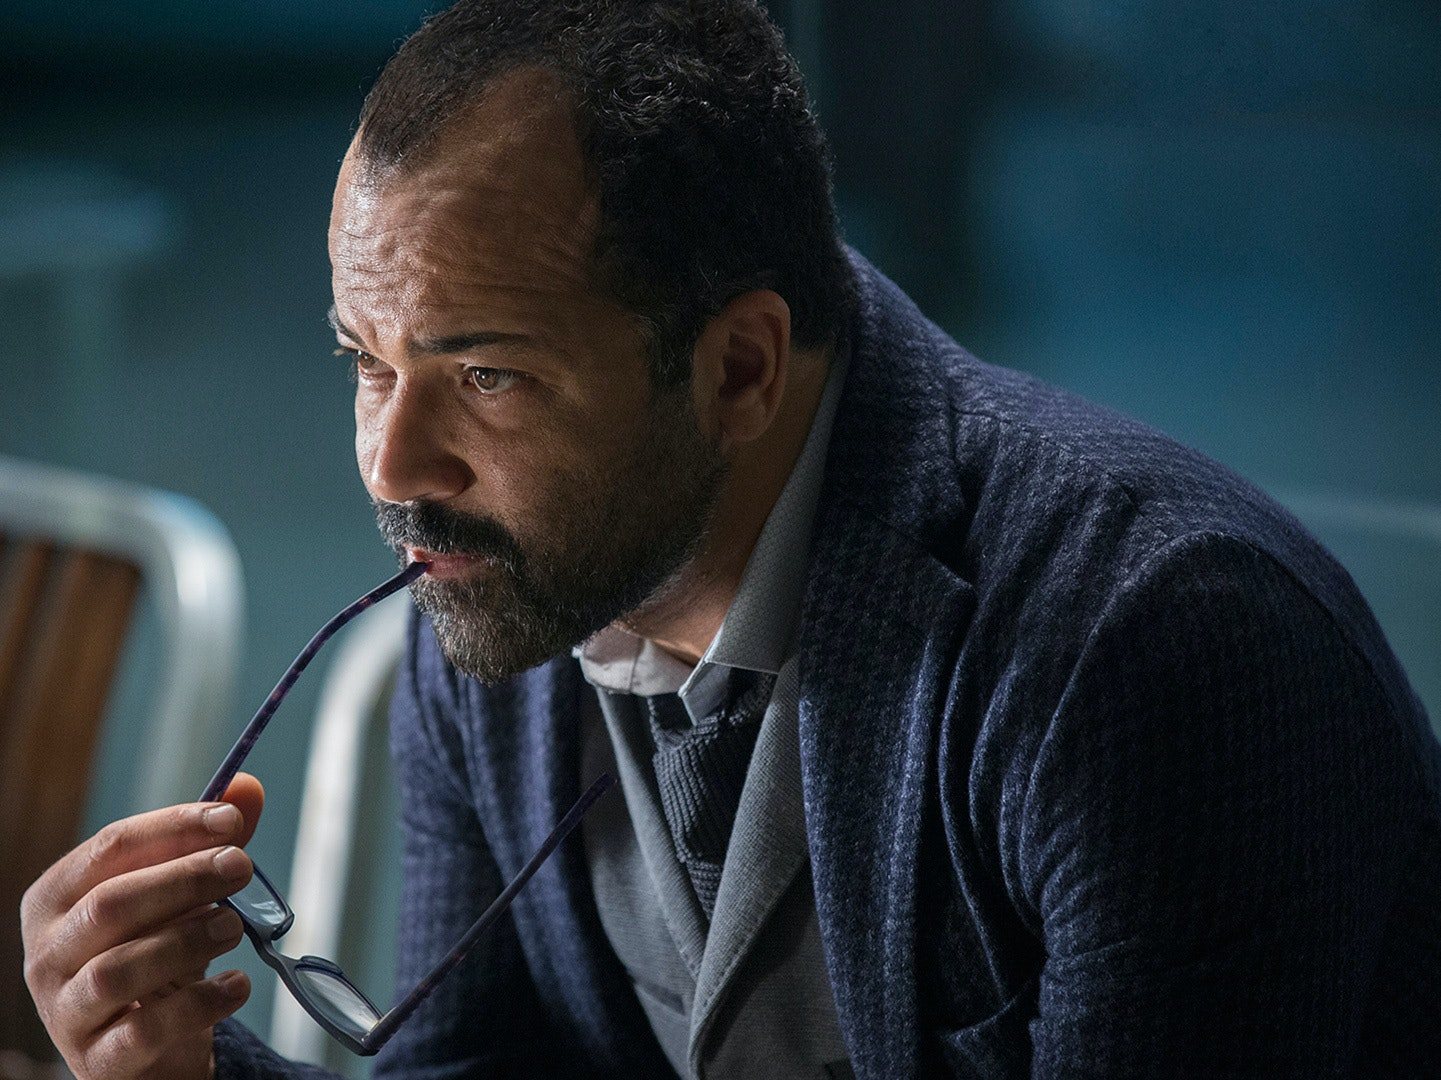 Psychology Says You'd Be a Big Jerk in Westworld